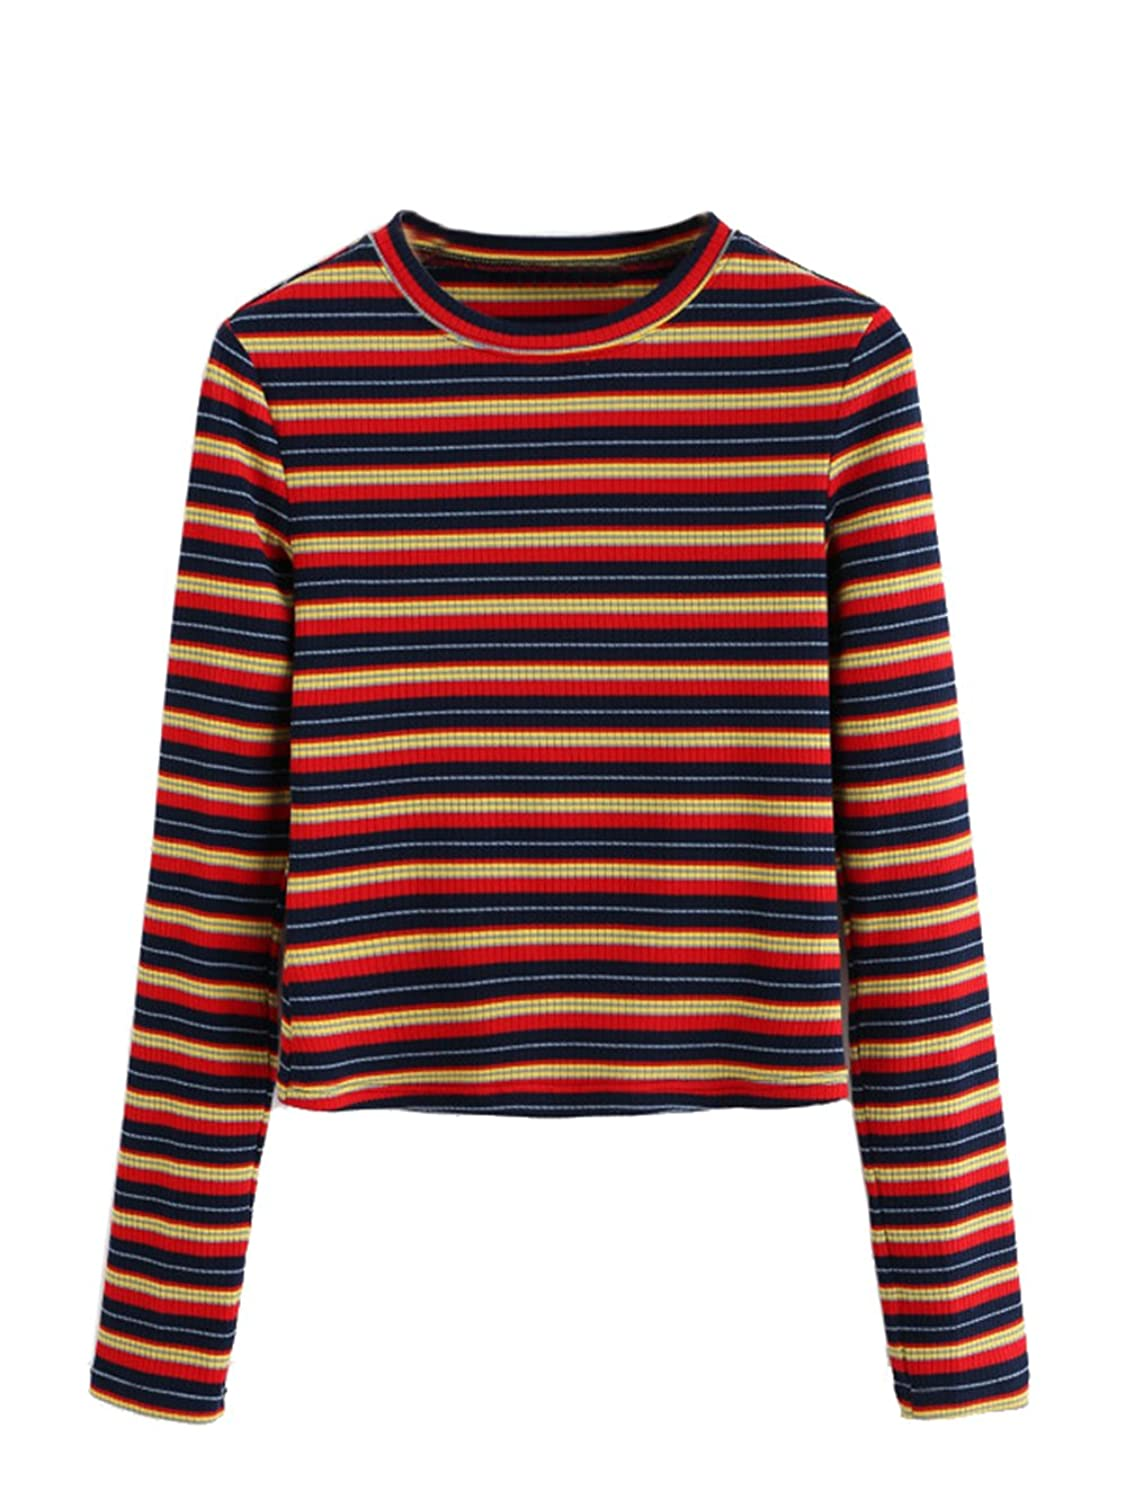 1960s Fashion: What Did Women Wear? Milumia Womens Casual Striped Ribbed Tee Knit Crop Top $15.99 AT vintagedancer.com